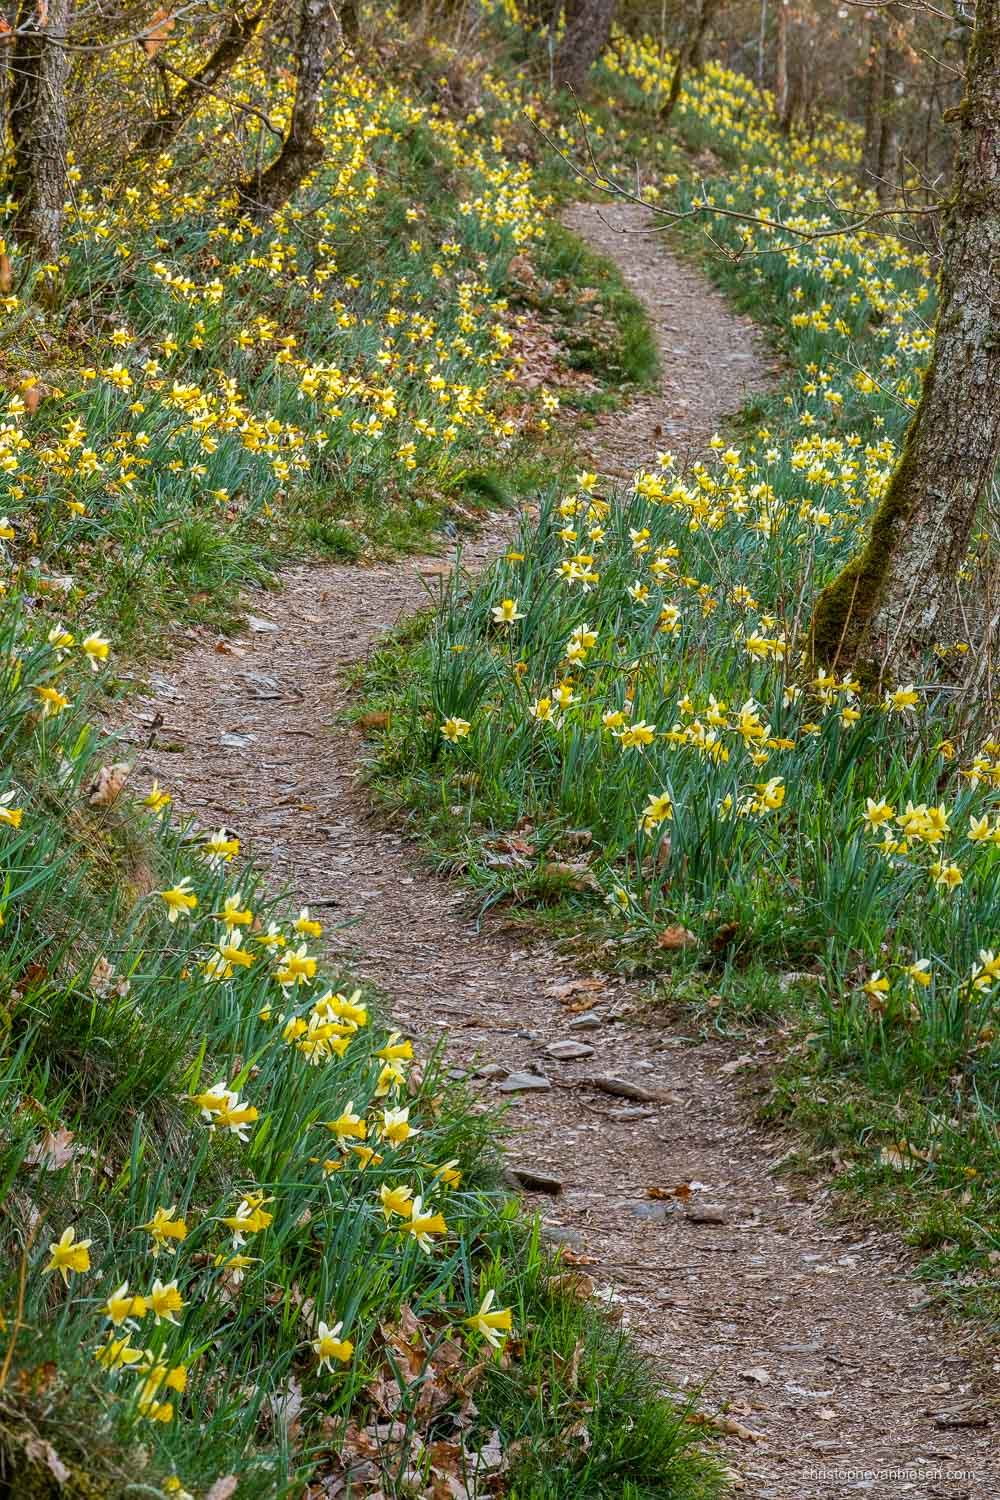 Luxembourg - The Via Botanica, also know as the path of the daffodils in Lellingen, Kiischpelt, Oesling, Luxembourg - Follow the Yellow Path